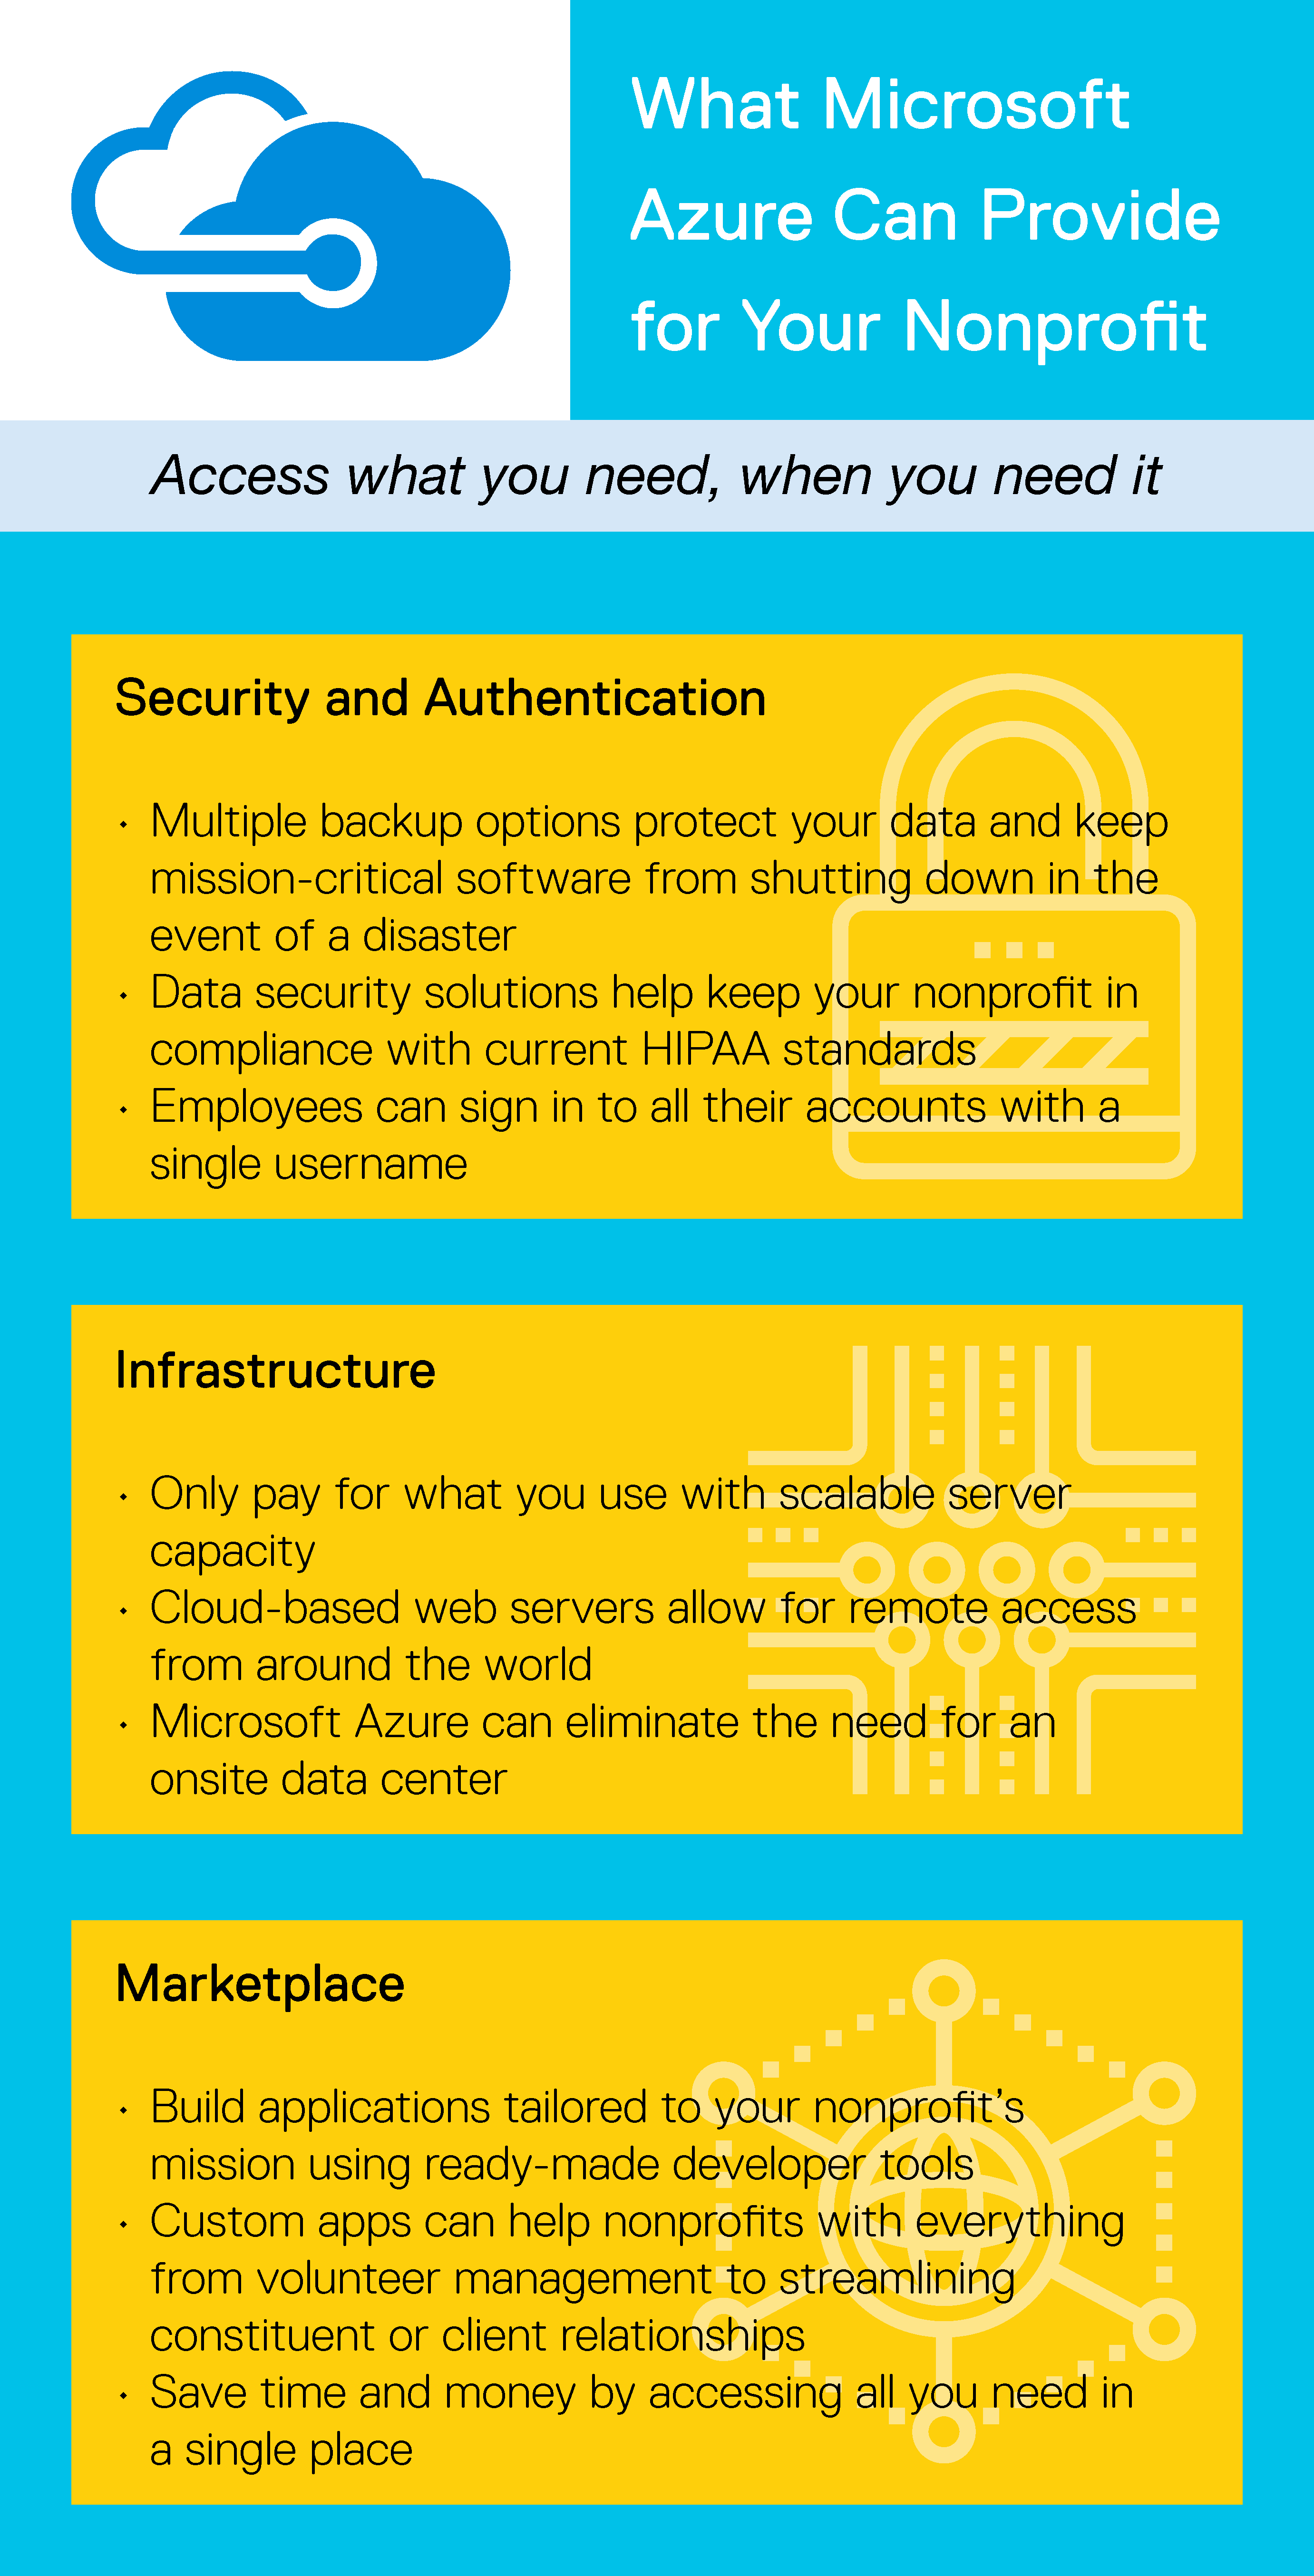 azure-infographic-2 (1).png